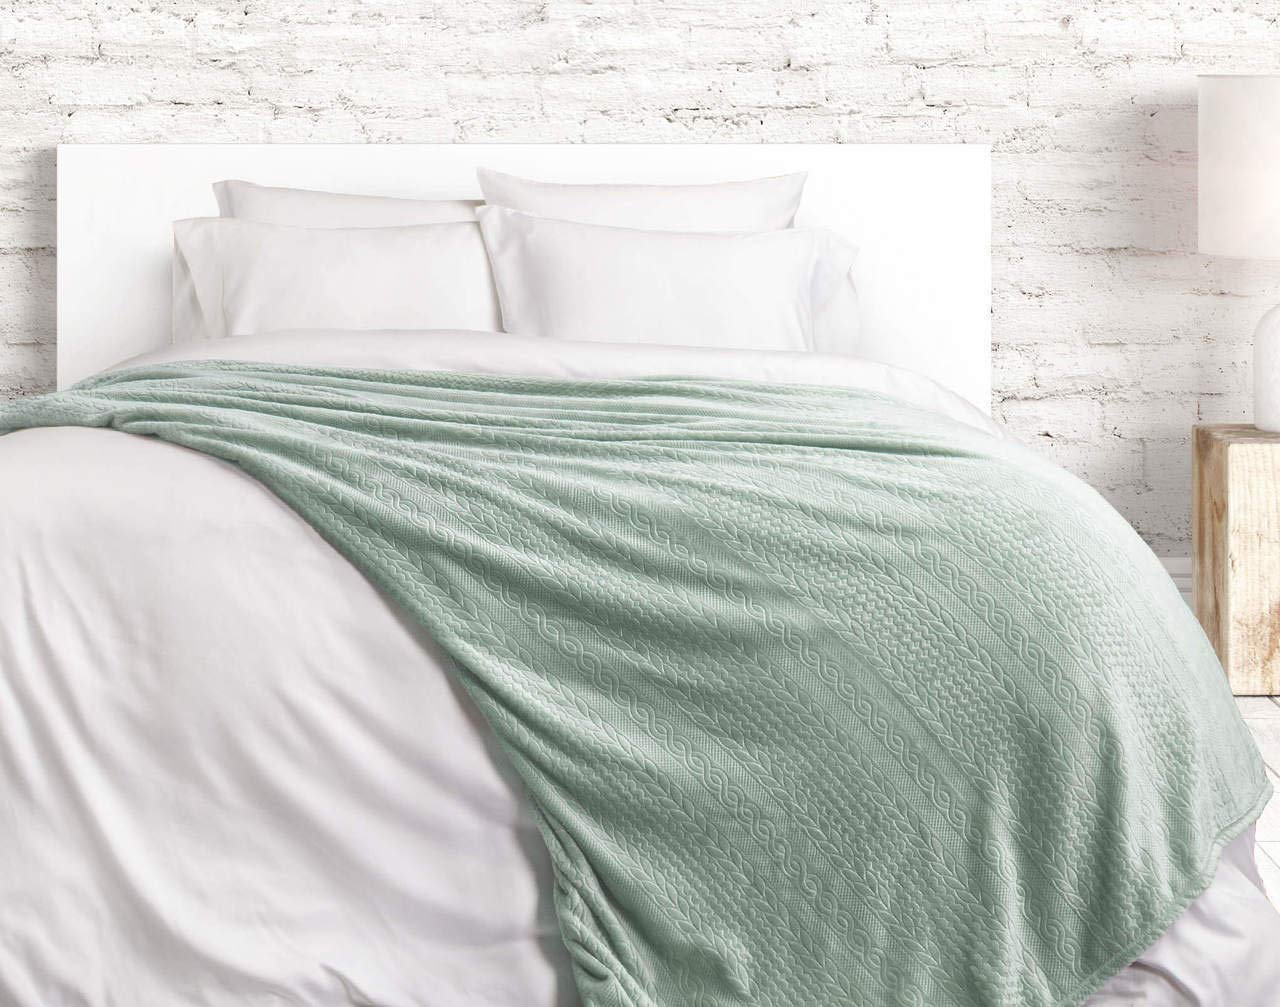 Cable Knit Blanket Queen.Amazon Com Qe Home Cable Knit Blanket Seafoam Queen